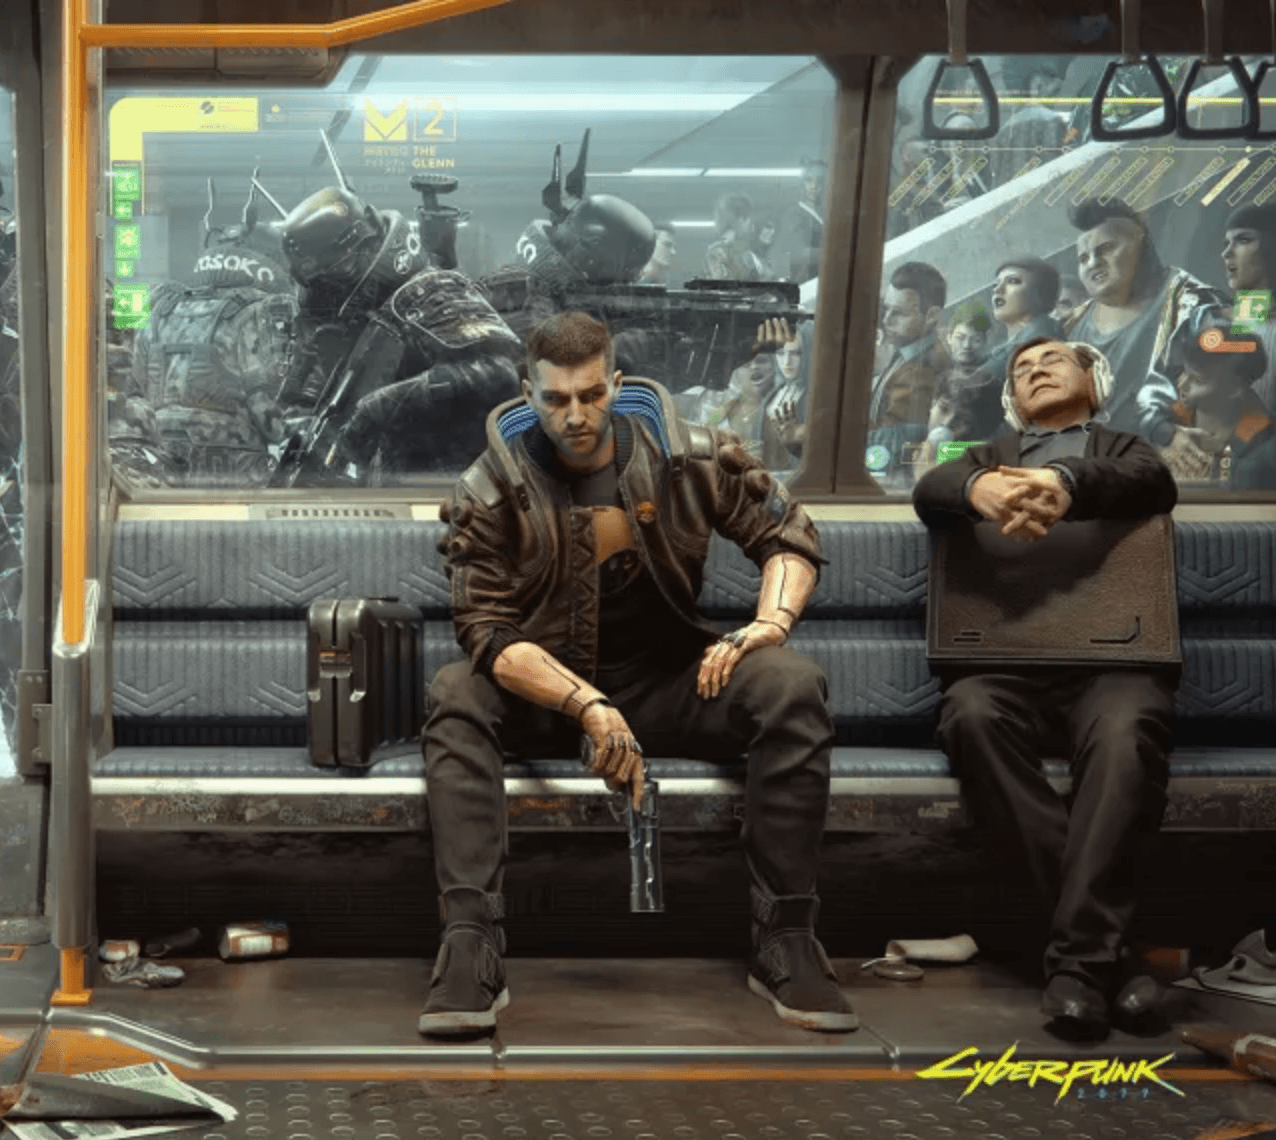 cyberpunk man with a gun sitting in a subway